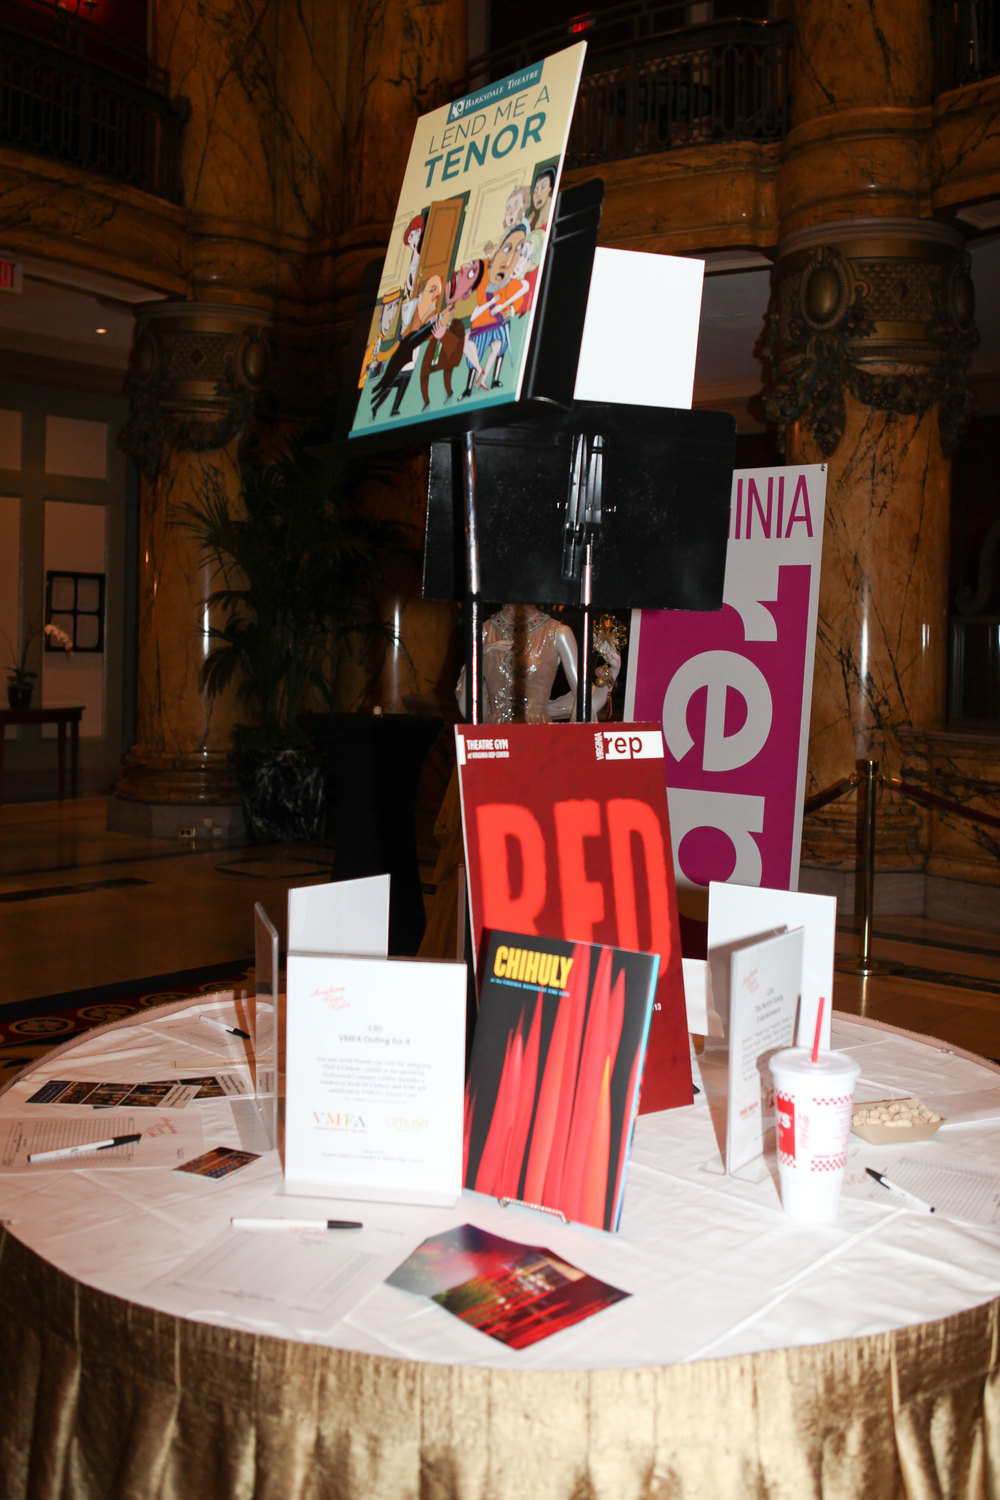 Gala,-Auction-table-display.jpg